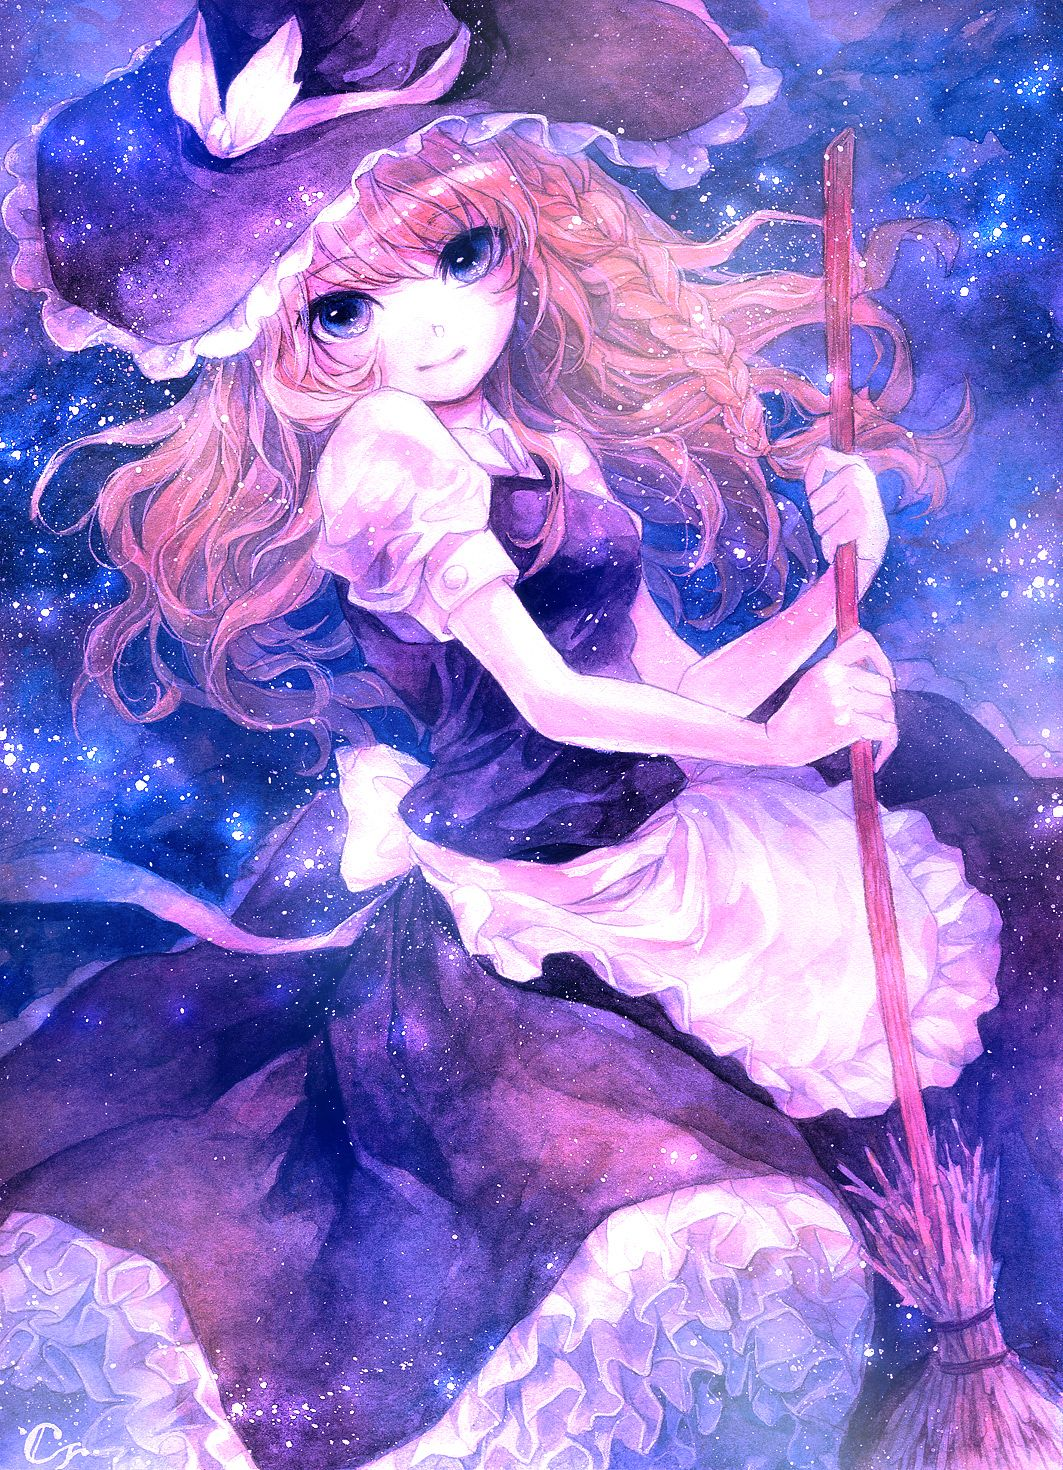 Marissa in Space. Touhou(画像あり) 魔理沙 イラスト, イラスト